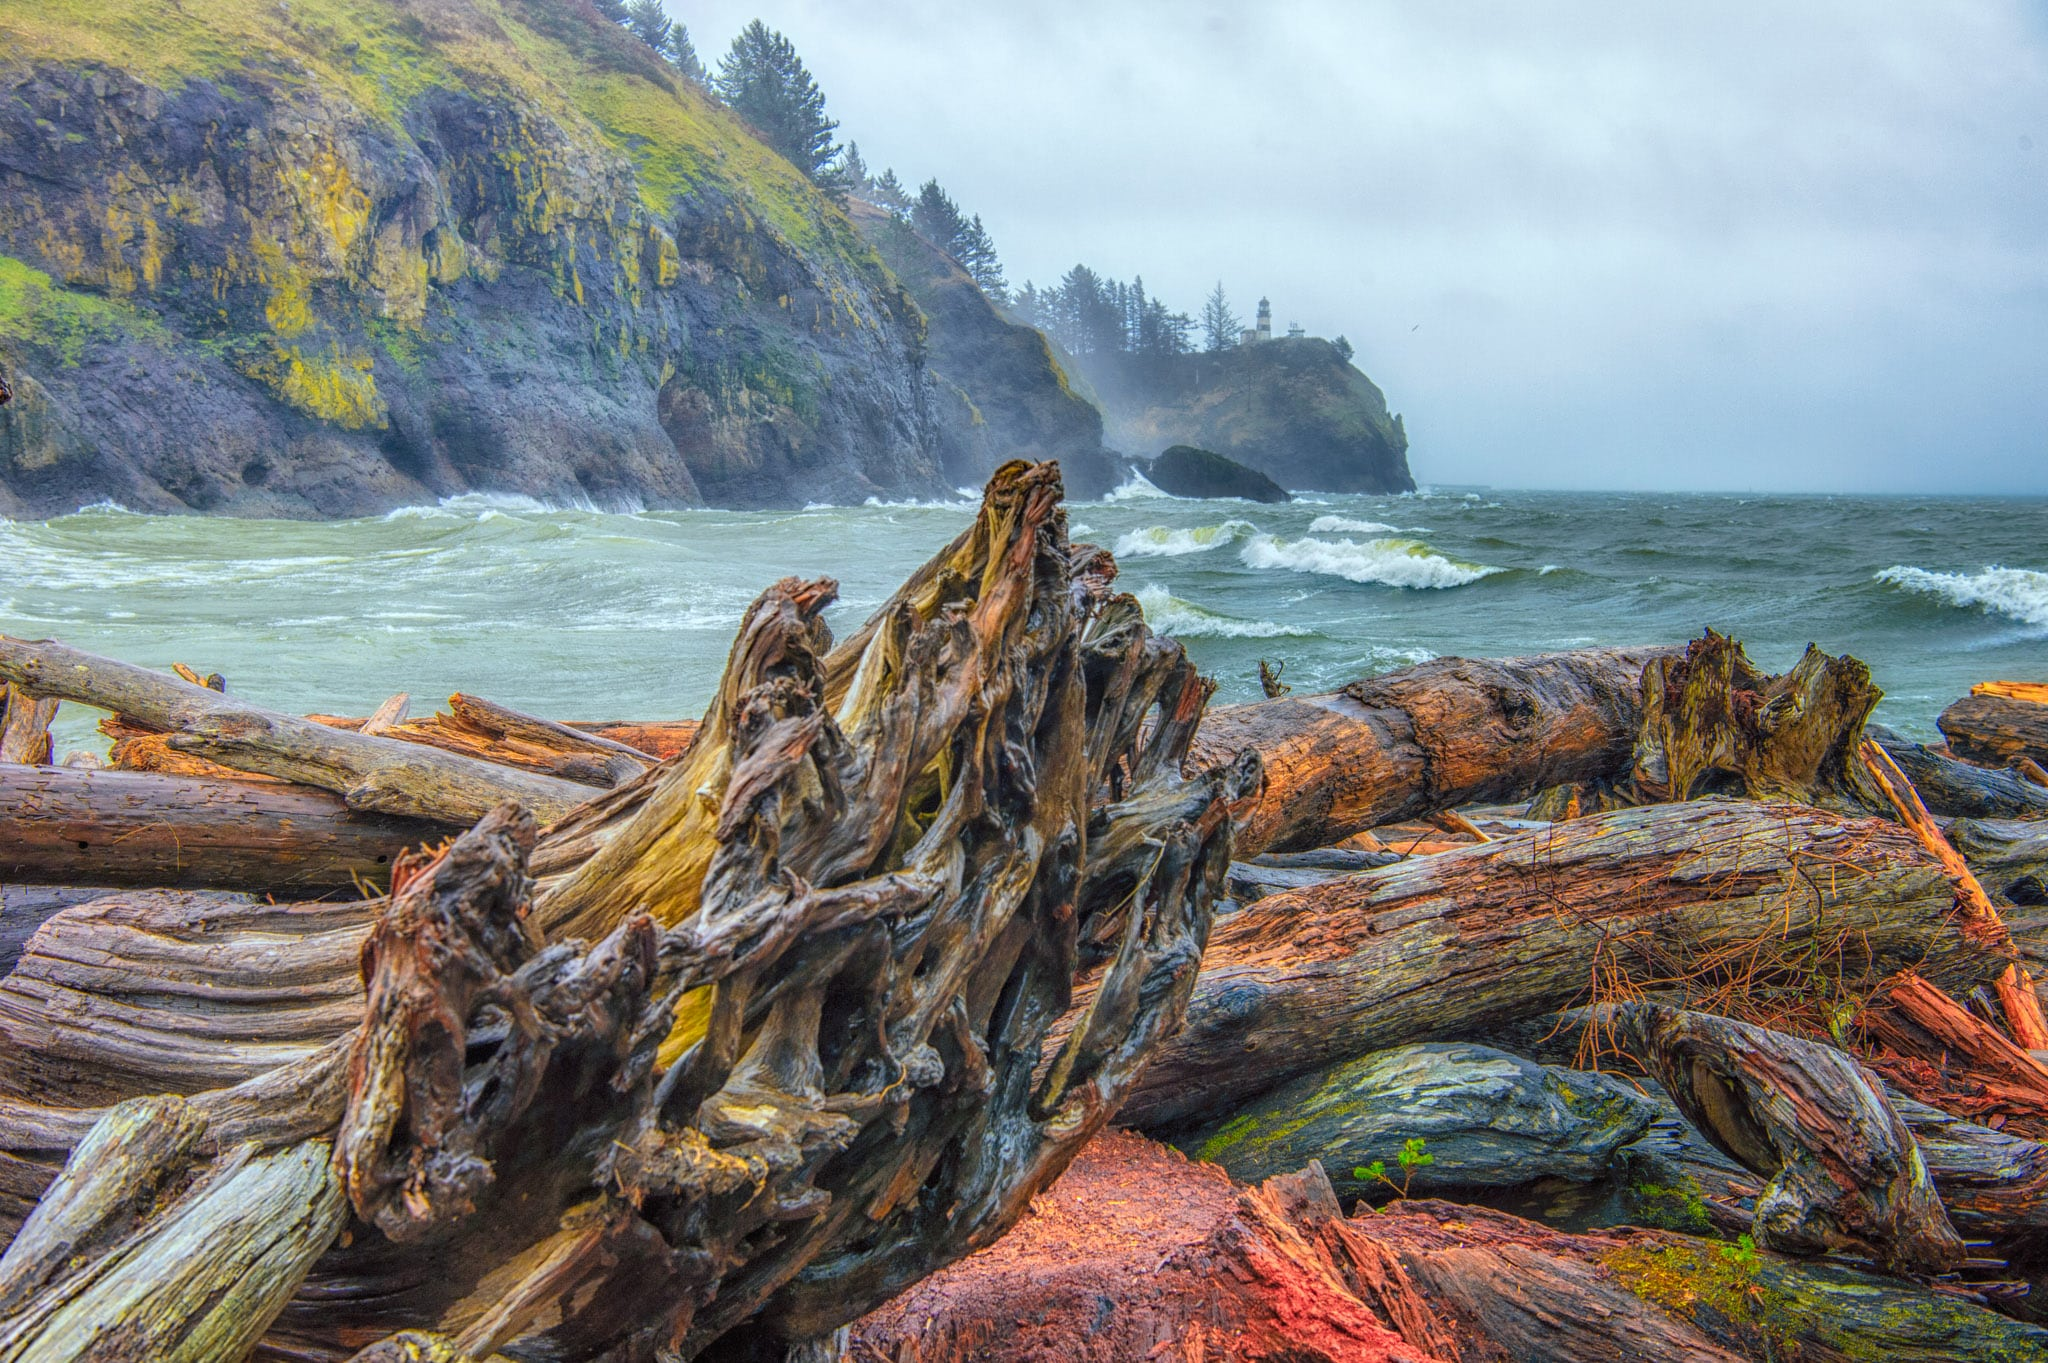 Cape Disappointment Lighthouse - Oregon's Pacific coast